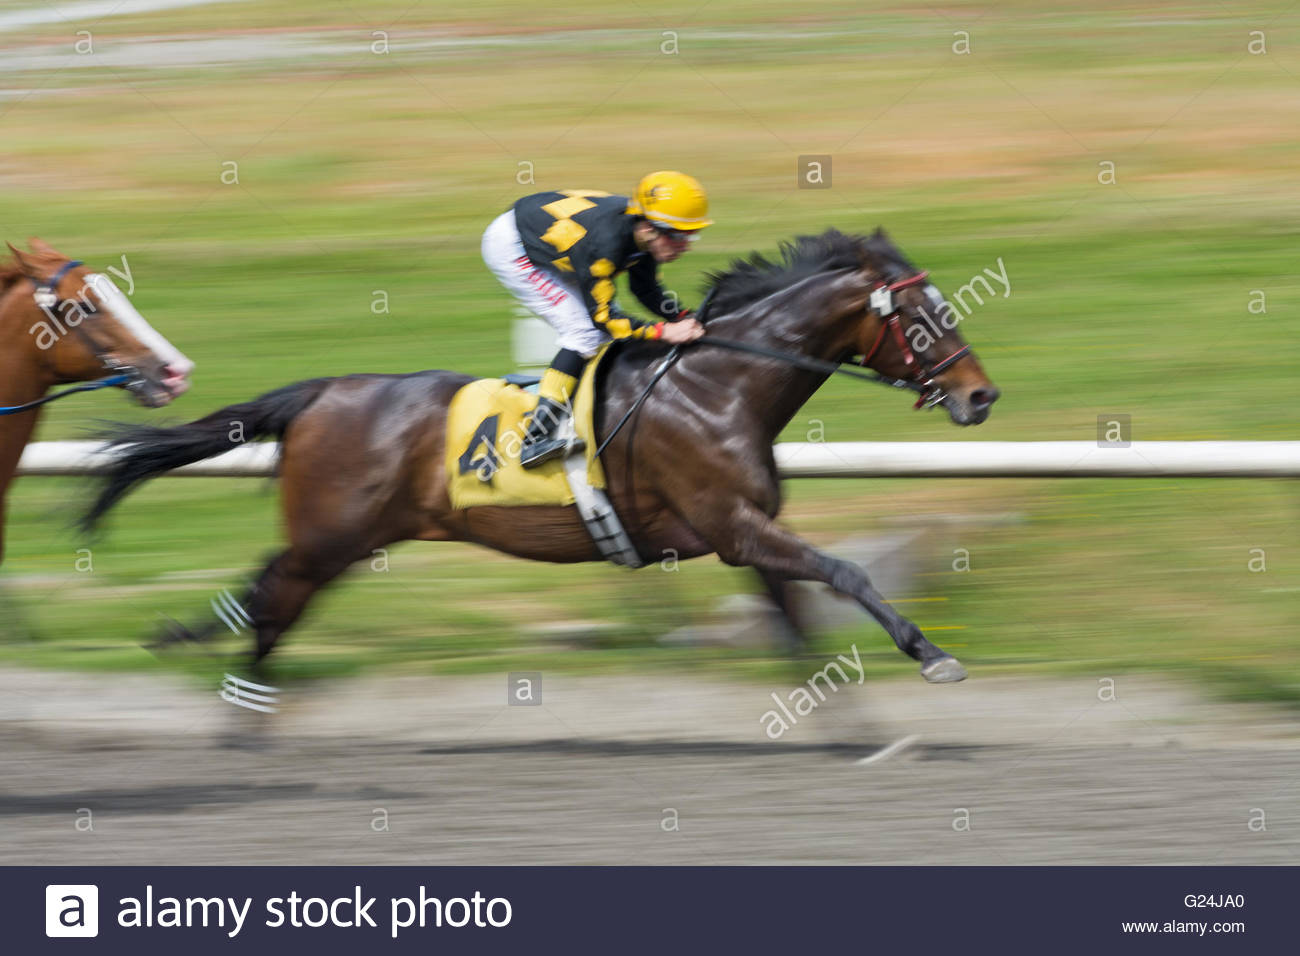 Panned image of Jockey Denis Aroujo riding Similkameen Joey during Race 3 Claiming at the Hastings Racecourse in Stock Photo